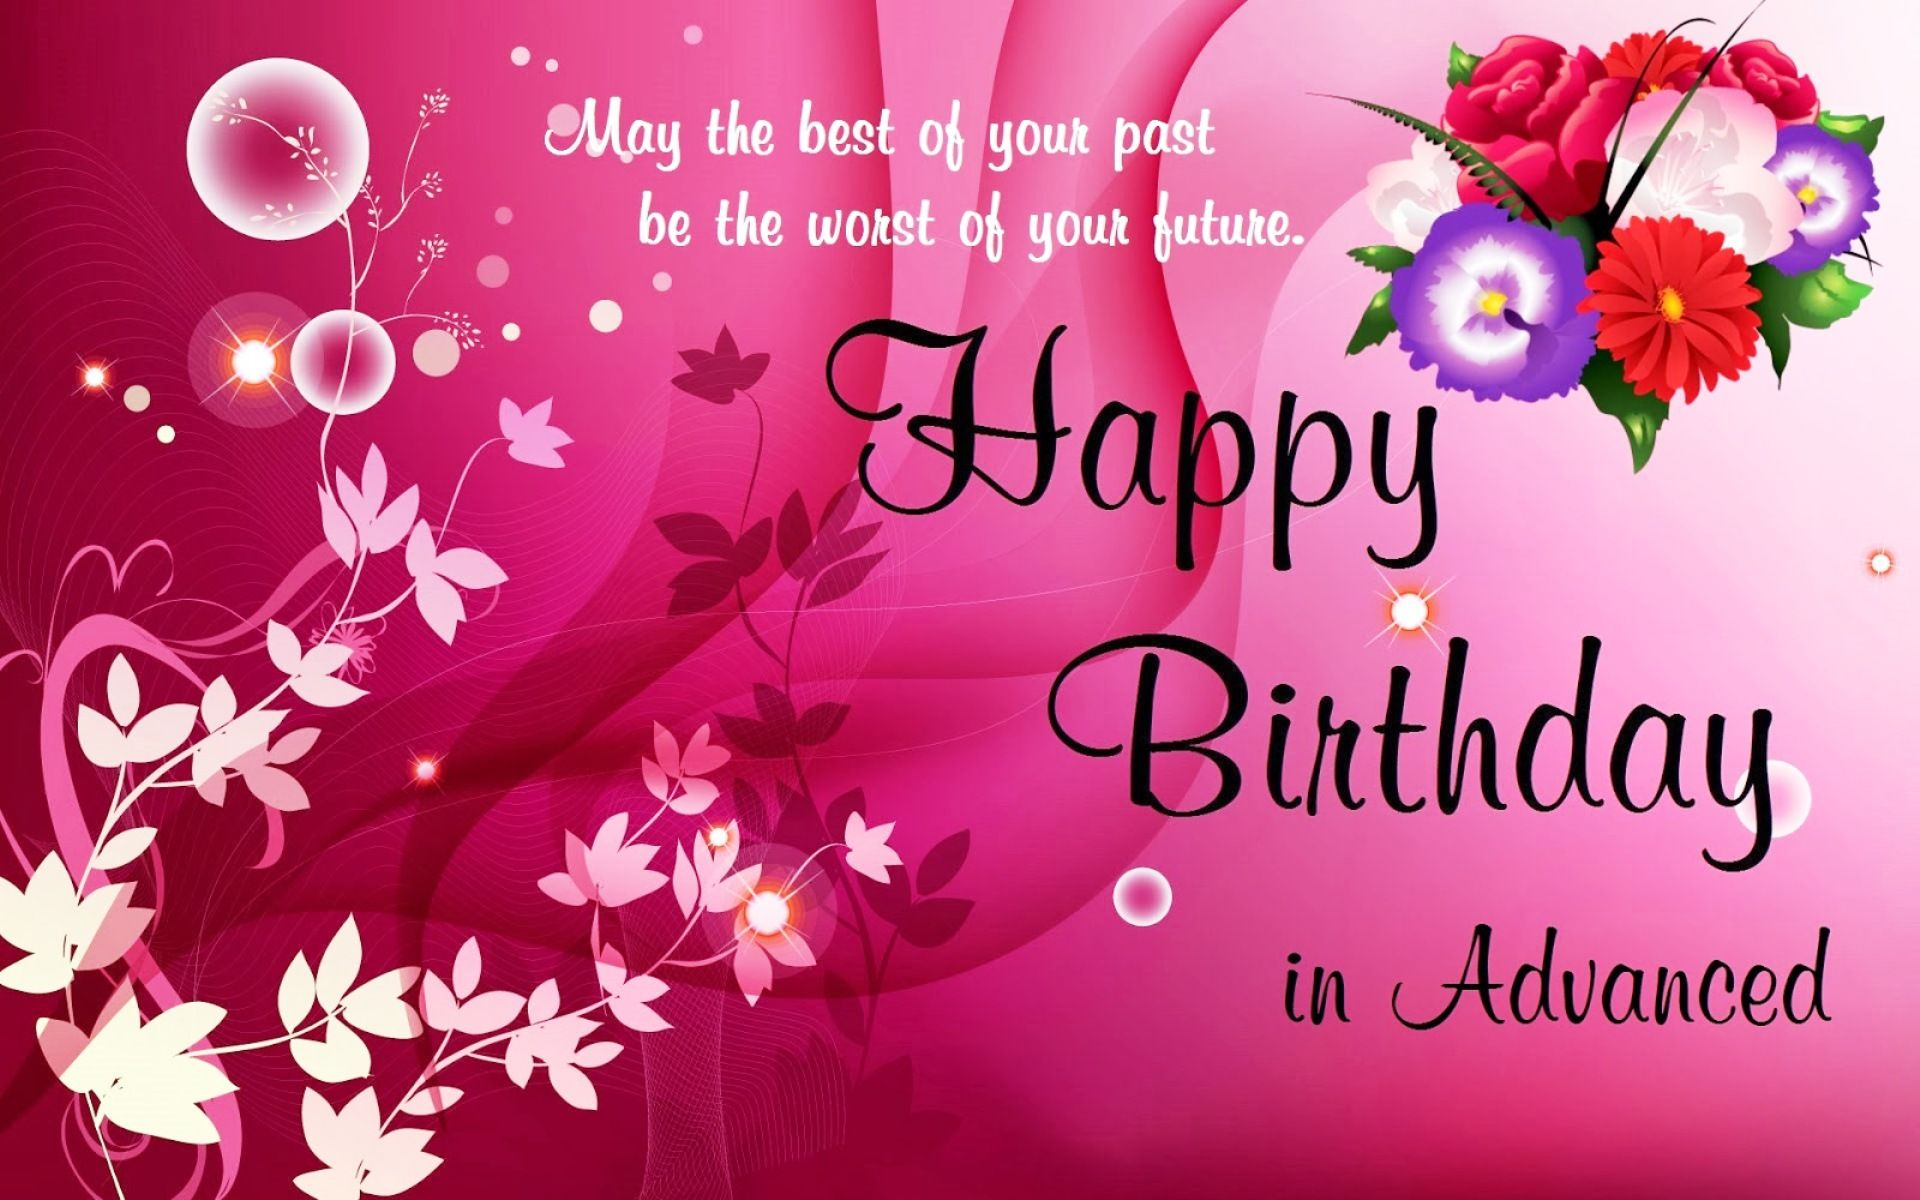 Happy Birthday Wishes Wallpapers Get The Newest Happy Birthday Wishes On Wall